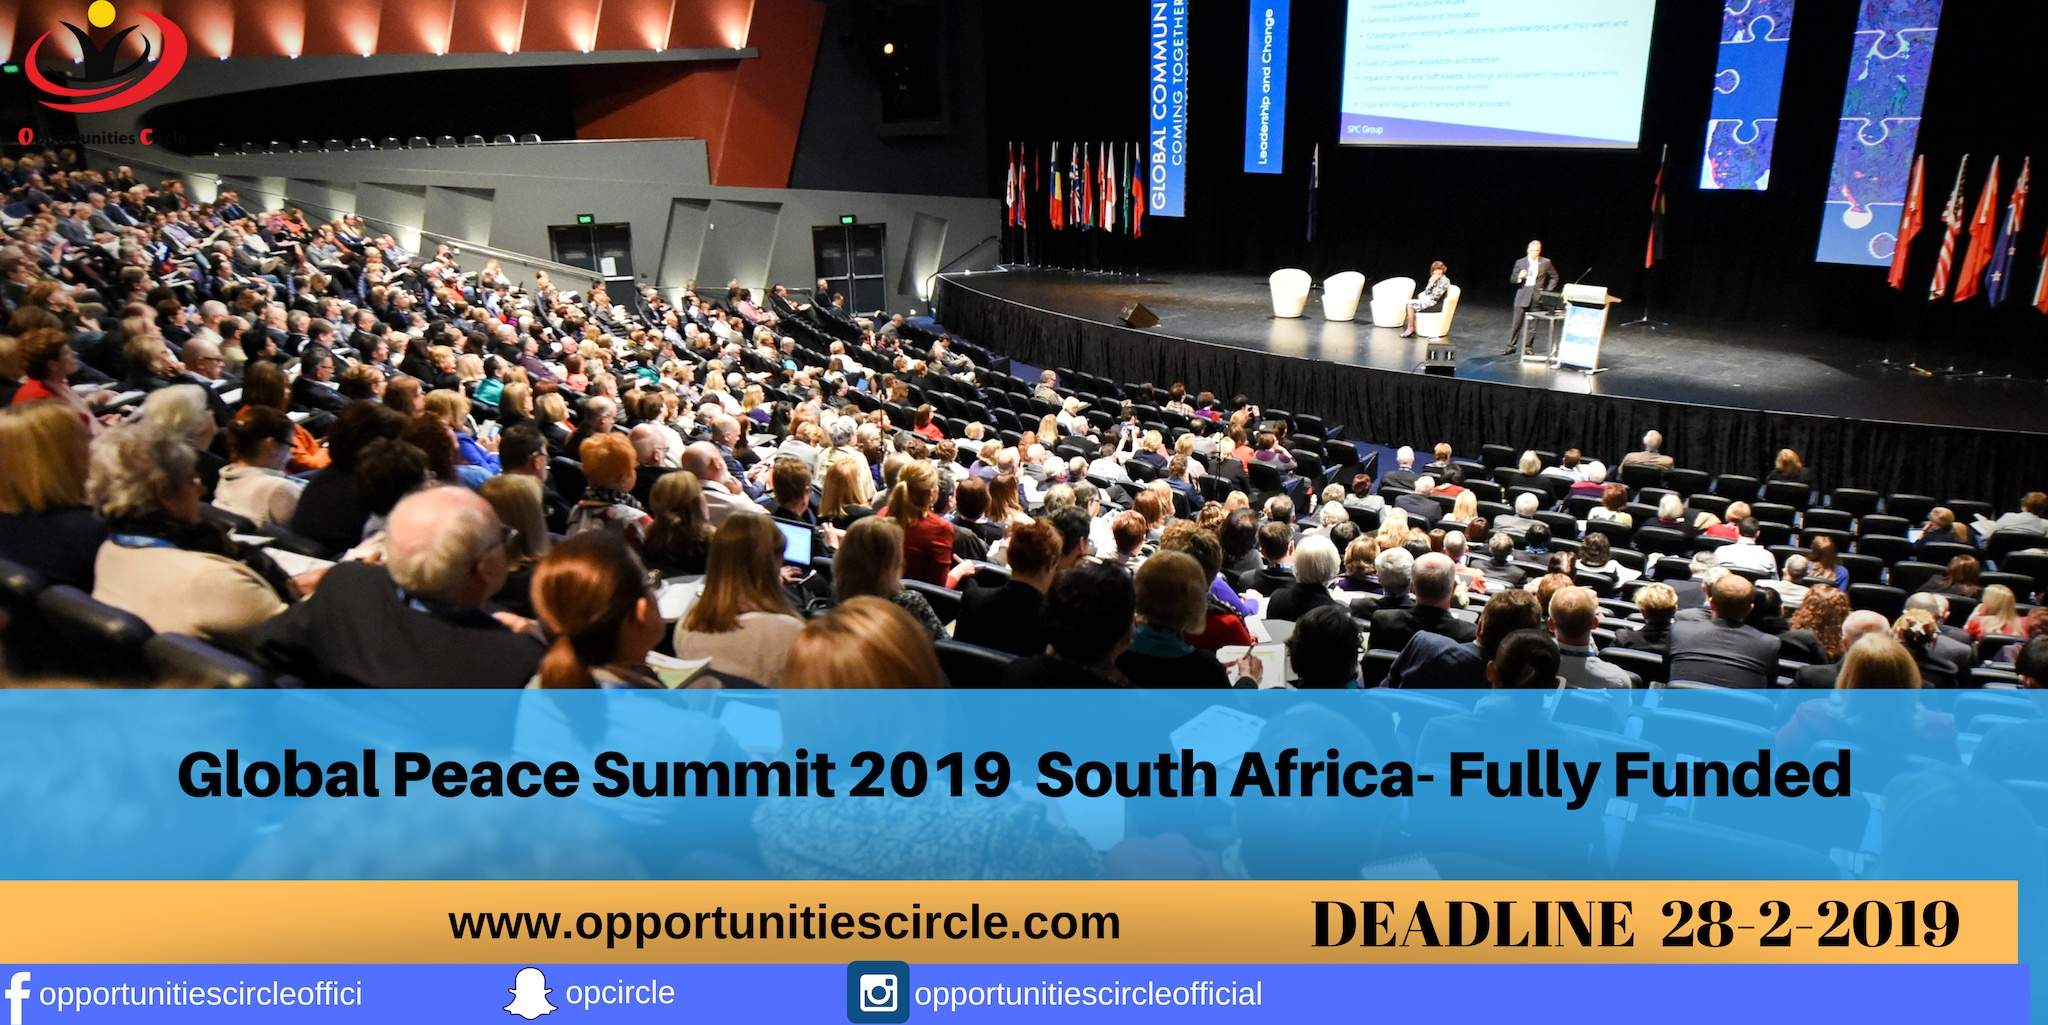 Global Peace Summit South Africa 2019 (Fully-funded